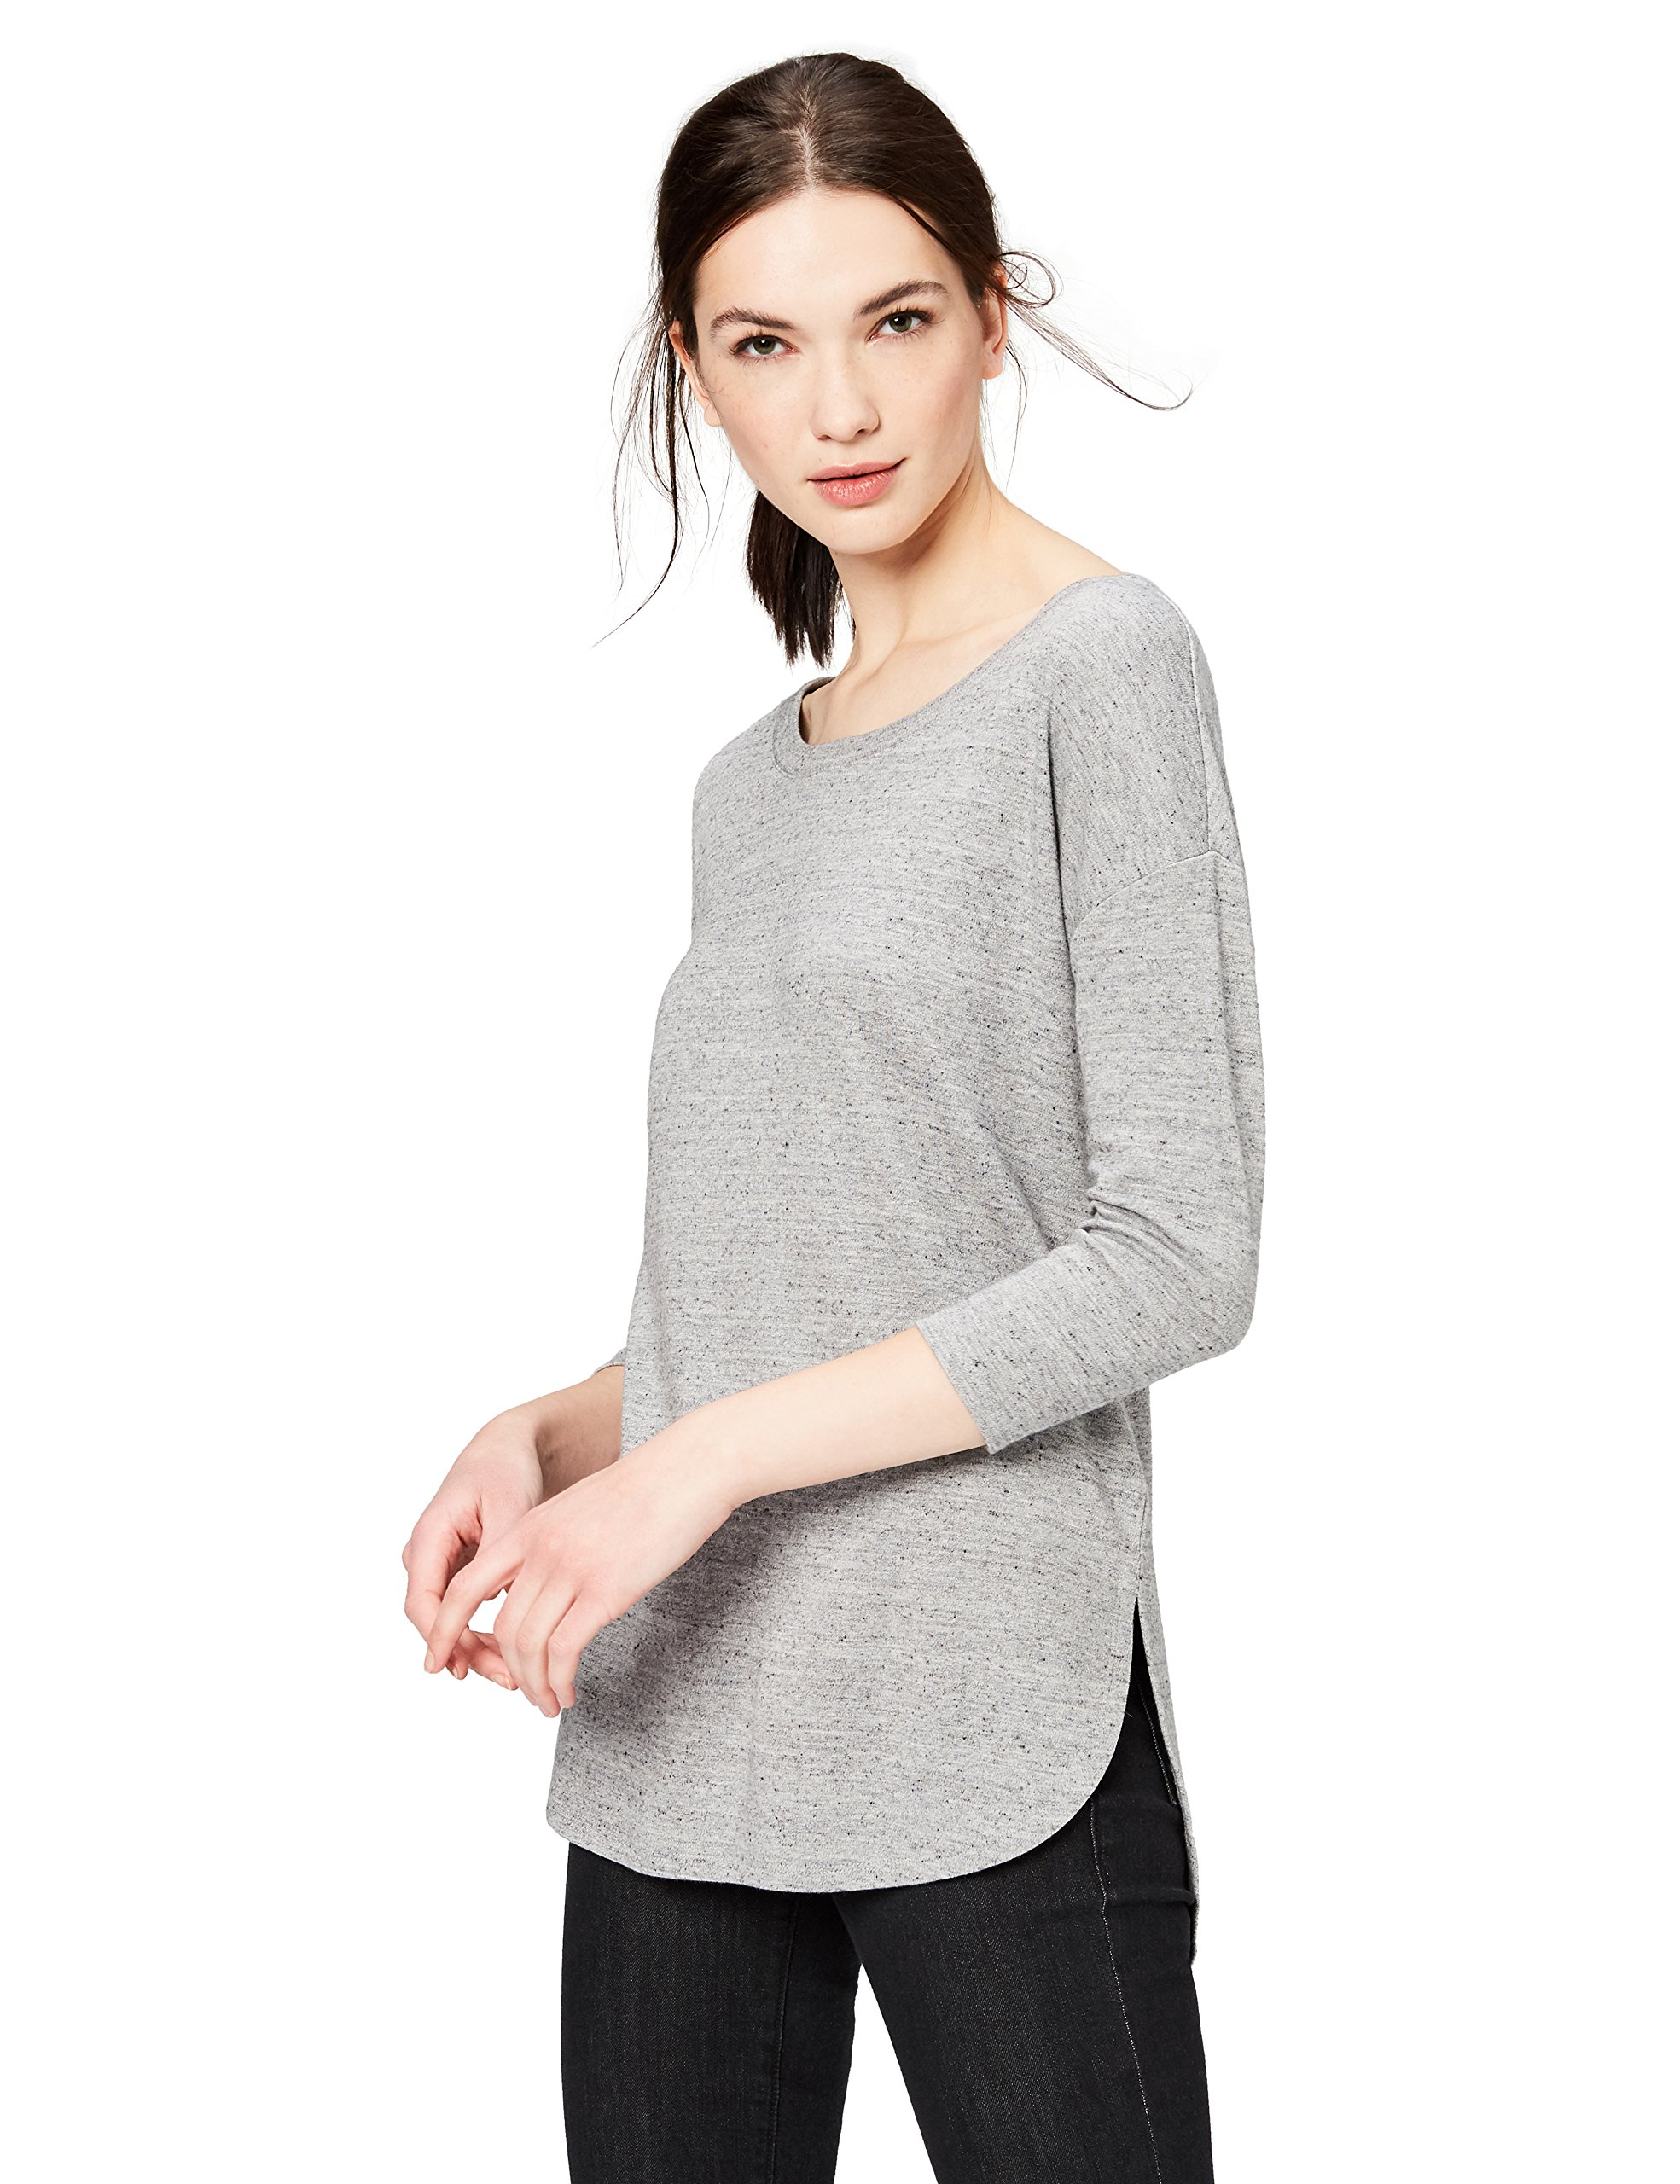 Daily Ritual Women's Pima Cotton and Modal 3/4-Sleeve Scoop Neck Tunic, S, Heather Grey Spacedye